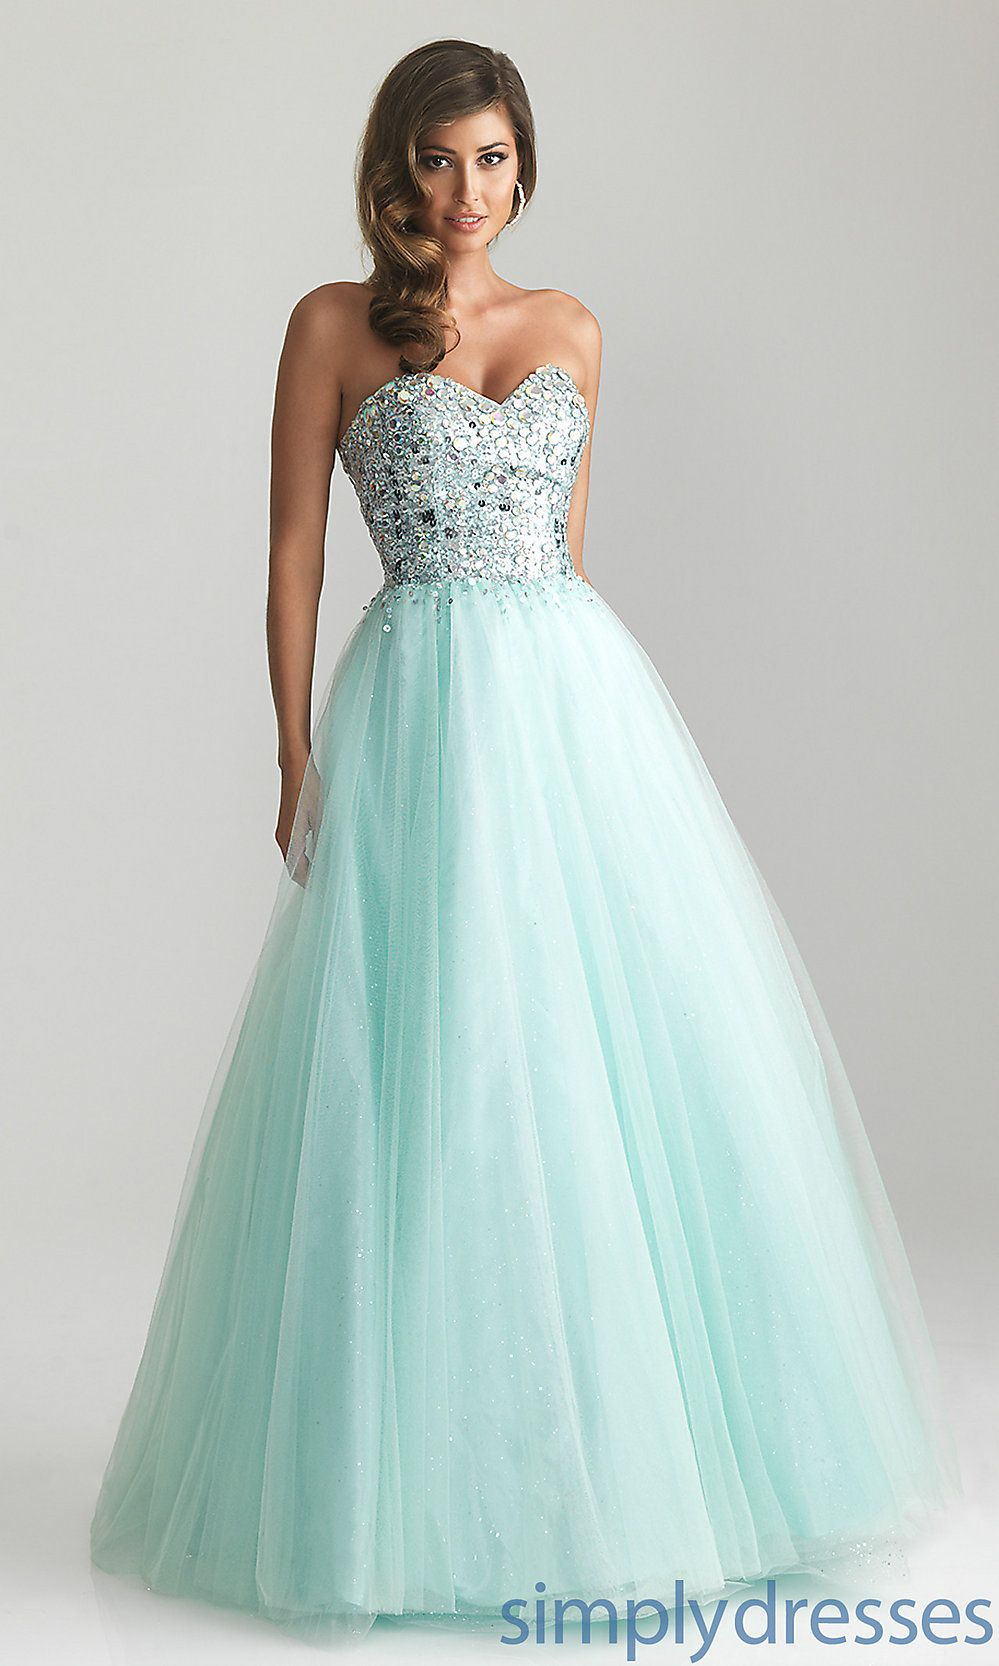 LOVE the puffy dresses | Dresses! | Pinterest | Puffy dresses, Prom ...